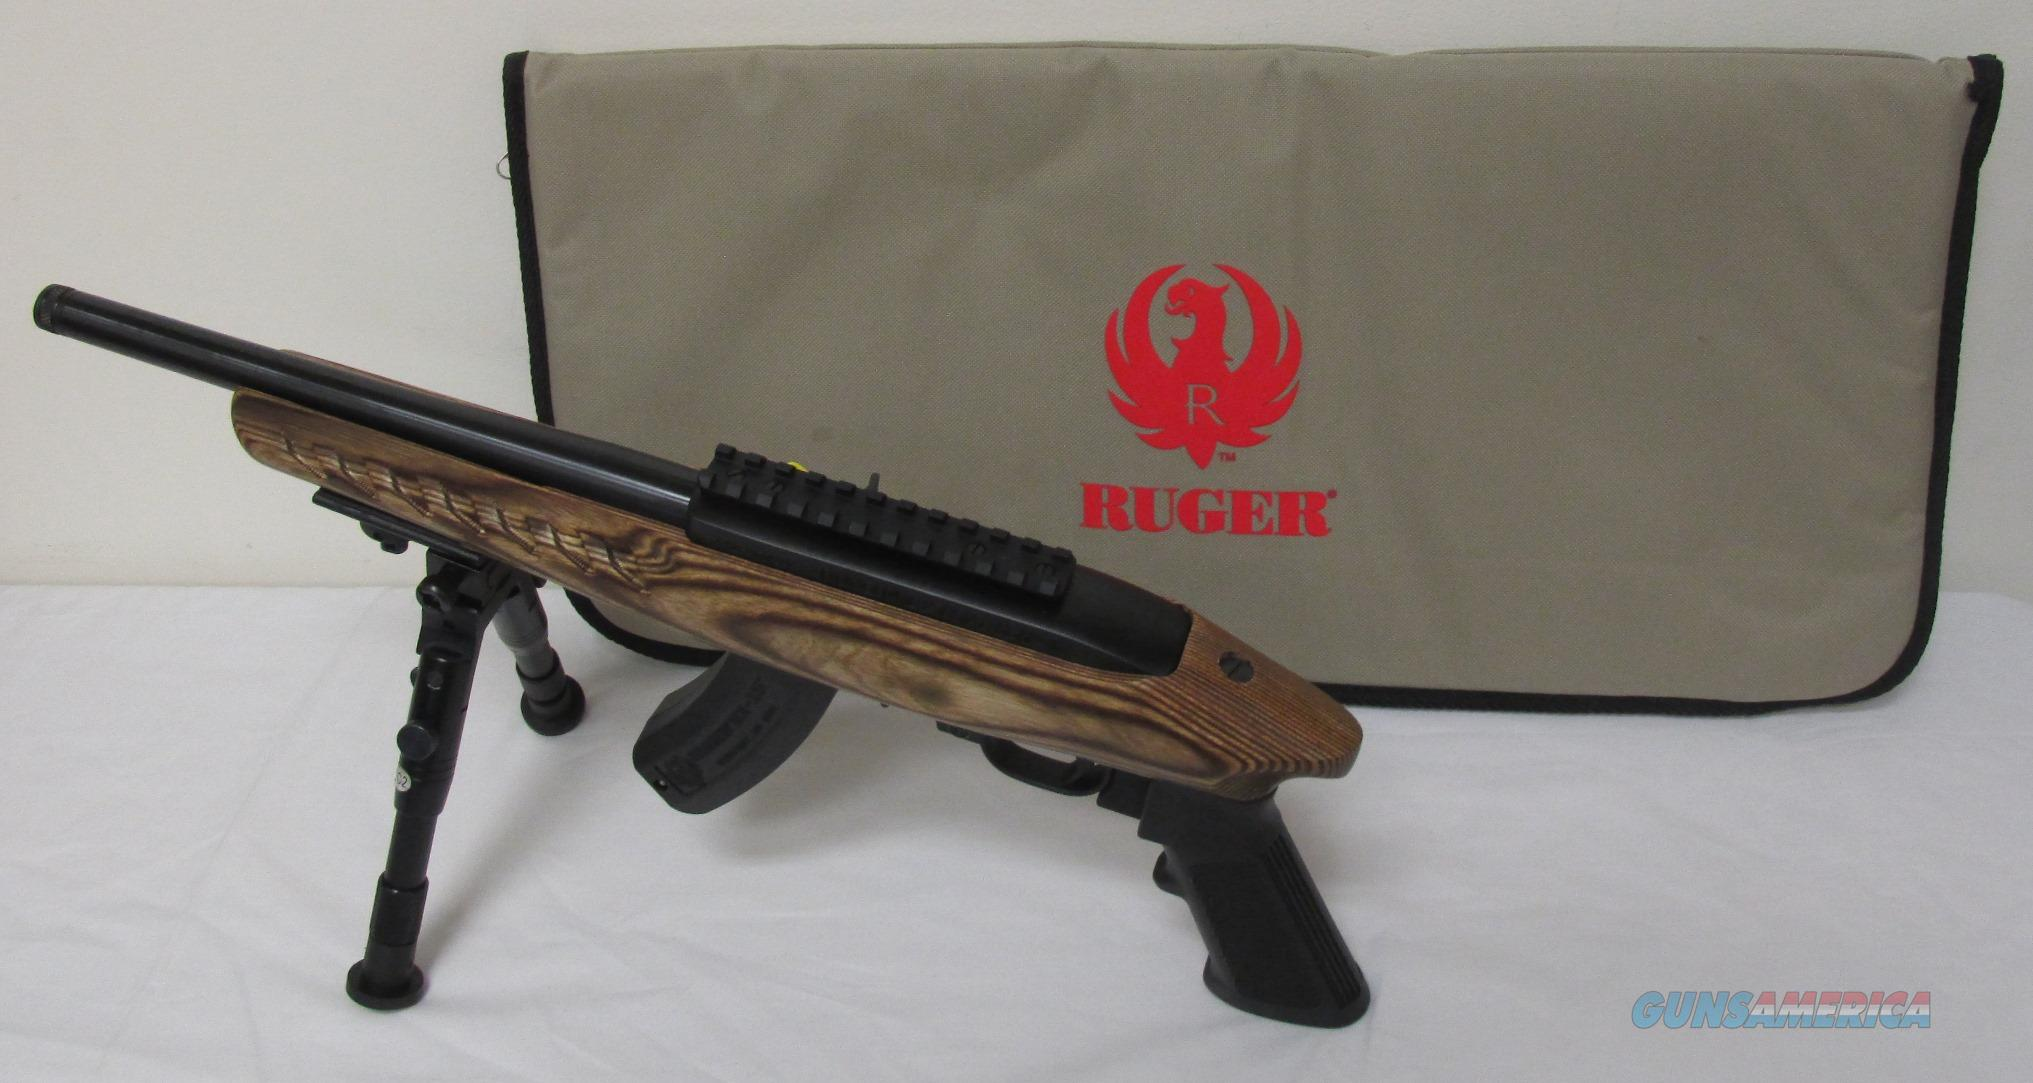 Ruger Charger 22LR  W/Bipod #4917  Guns > Pistols > Ruger Semi-Auto Pistols > Charger Series